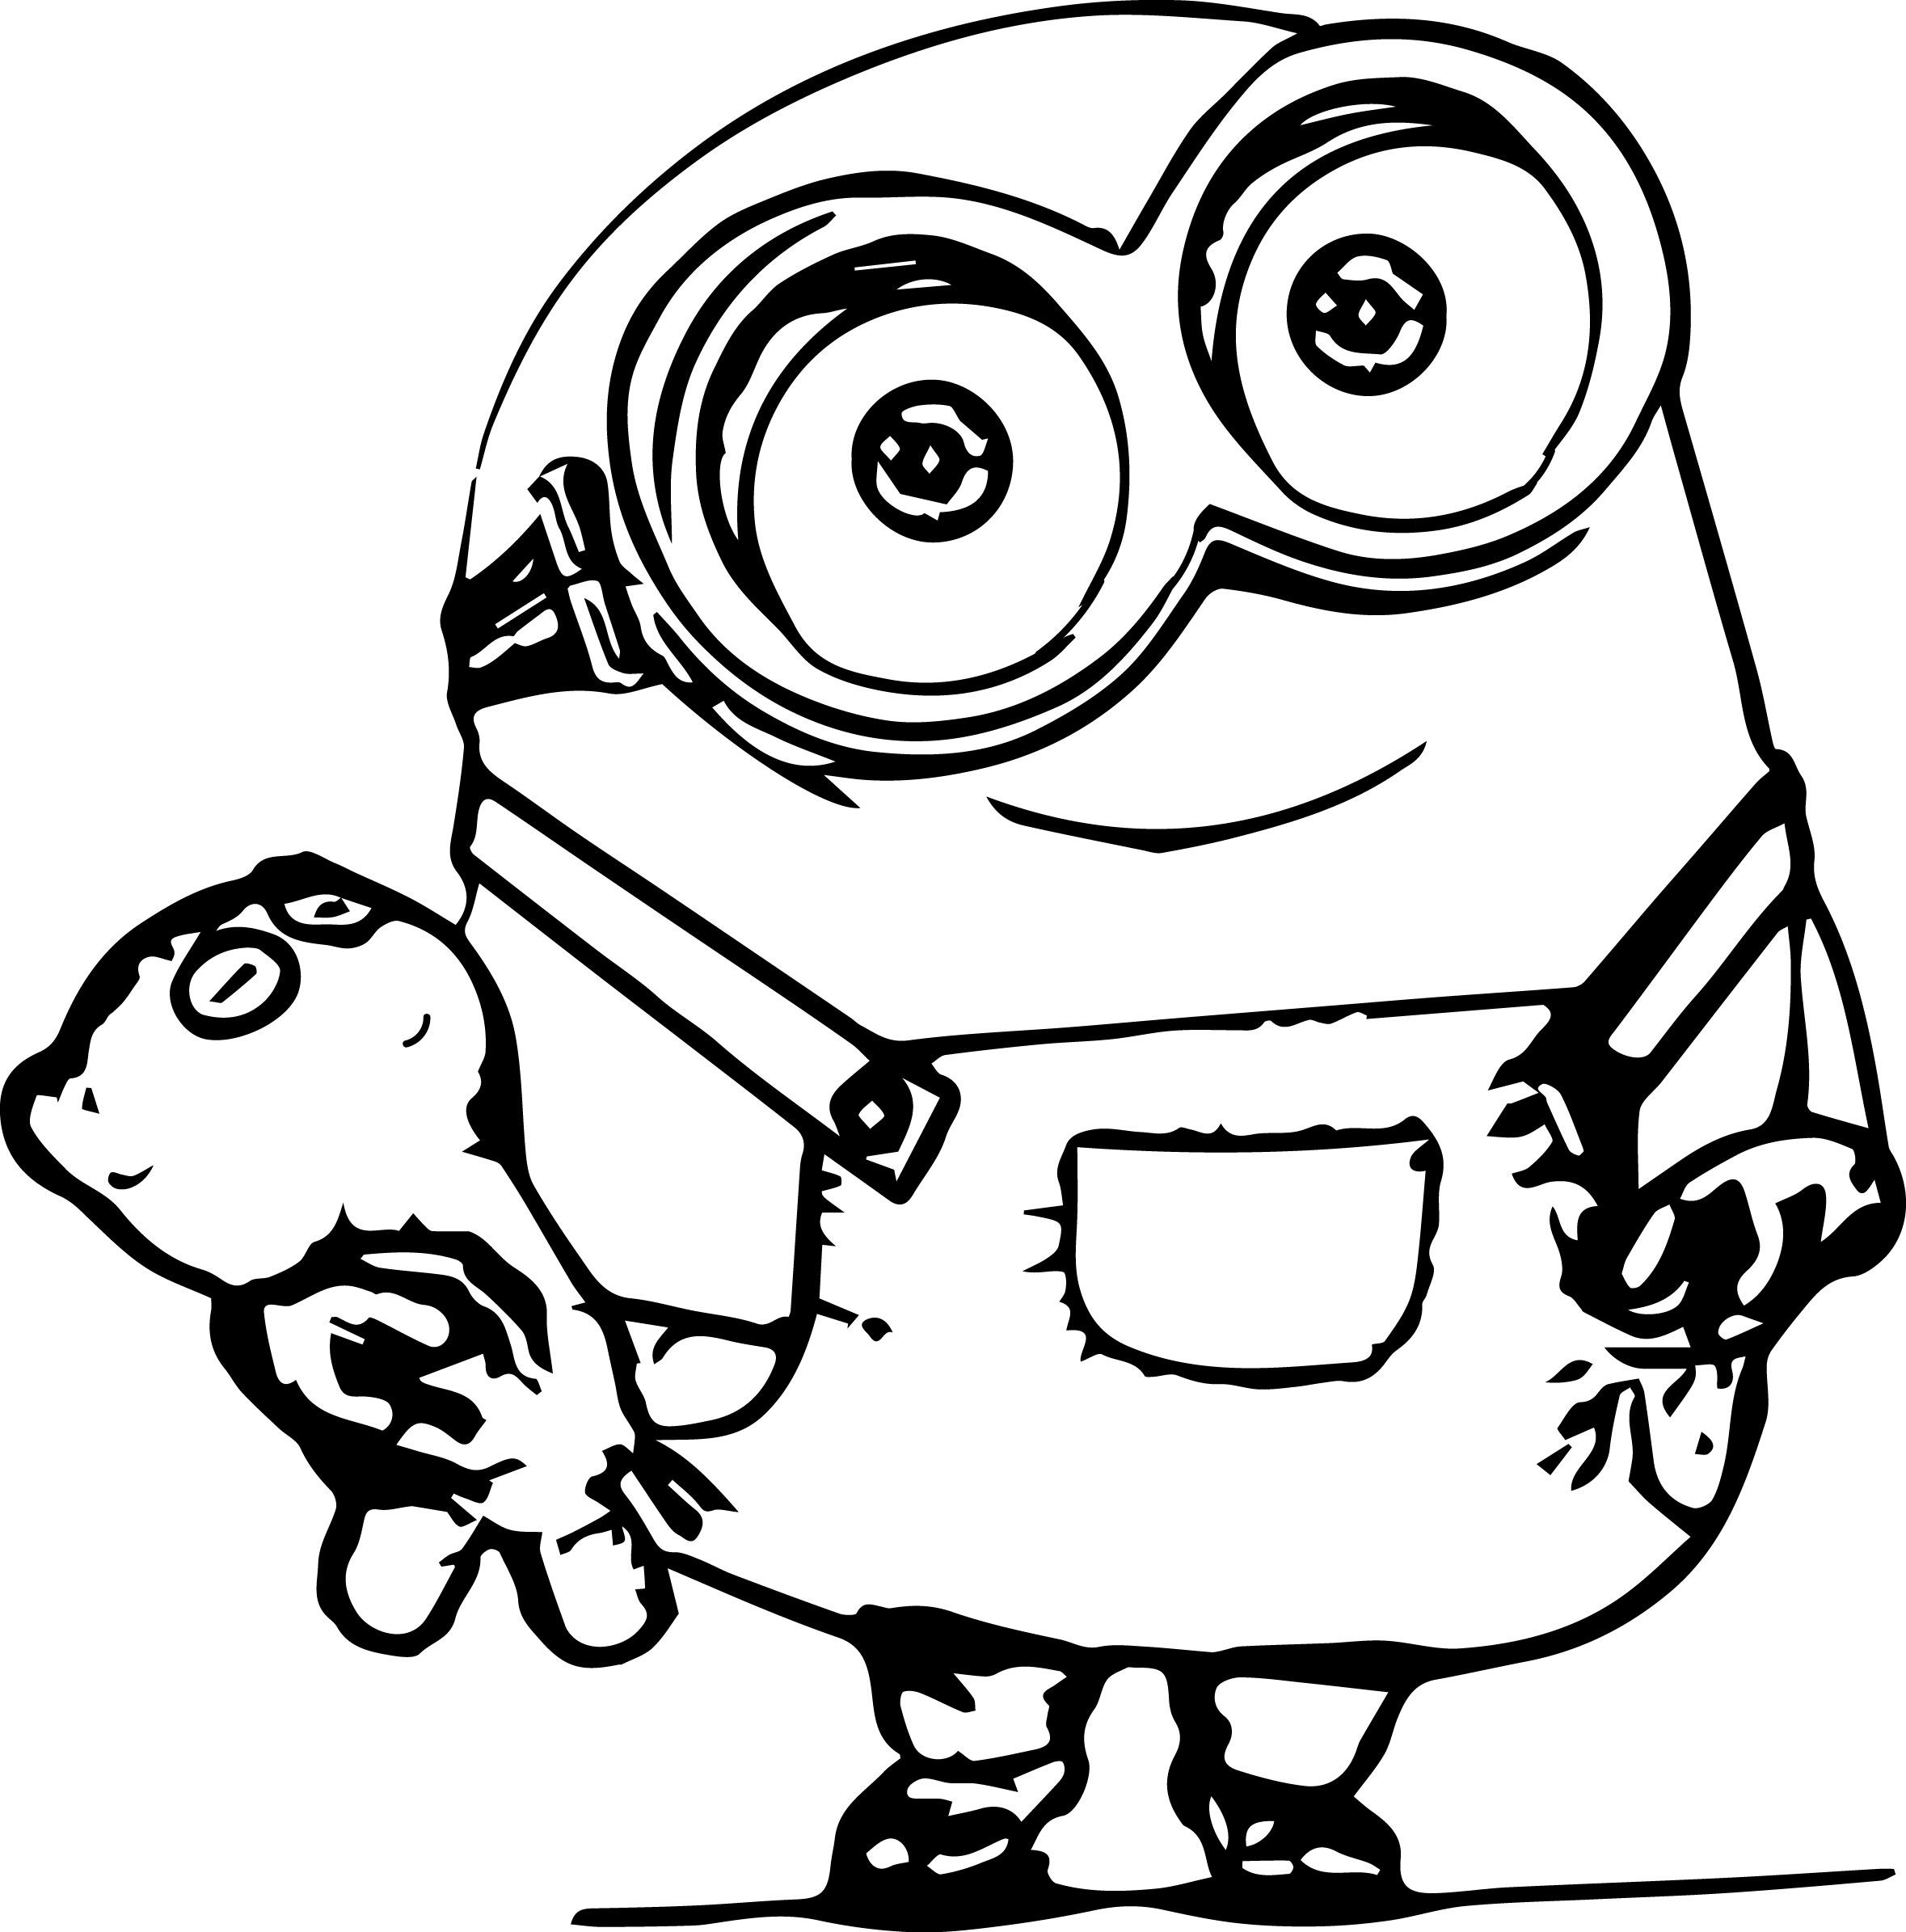 Minion maid coloring pages - Awesome Minions Coloring Pages